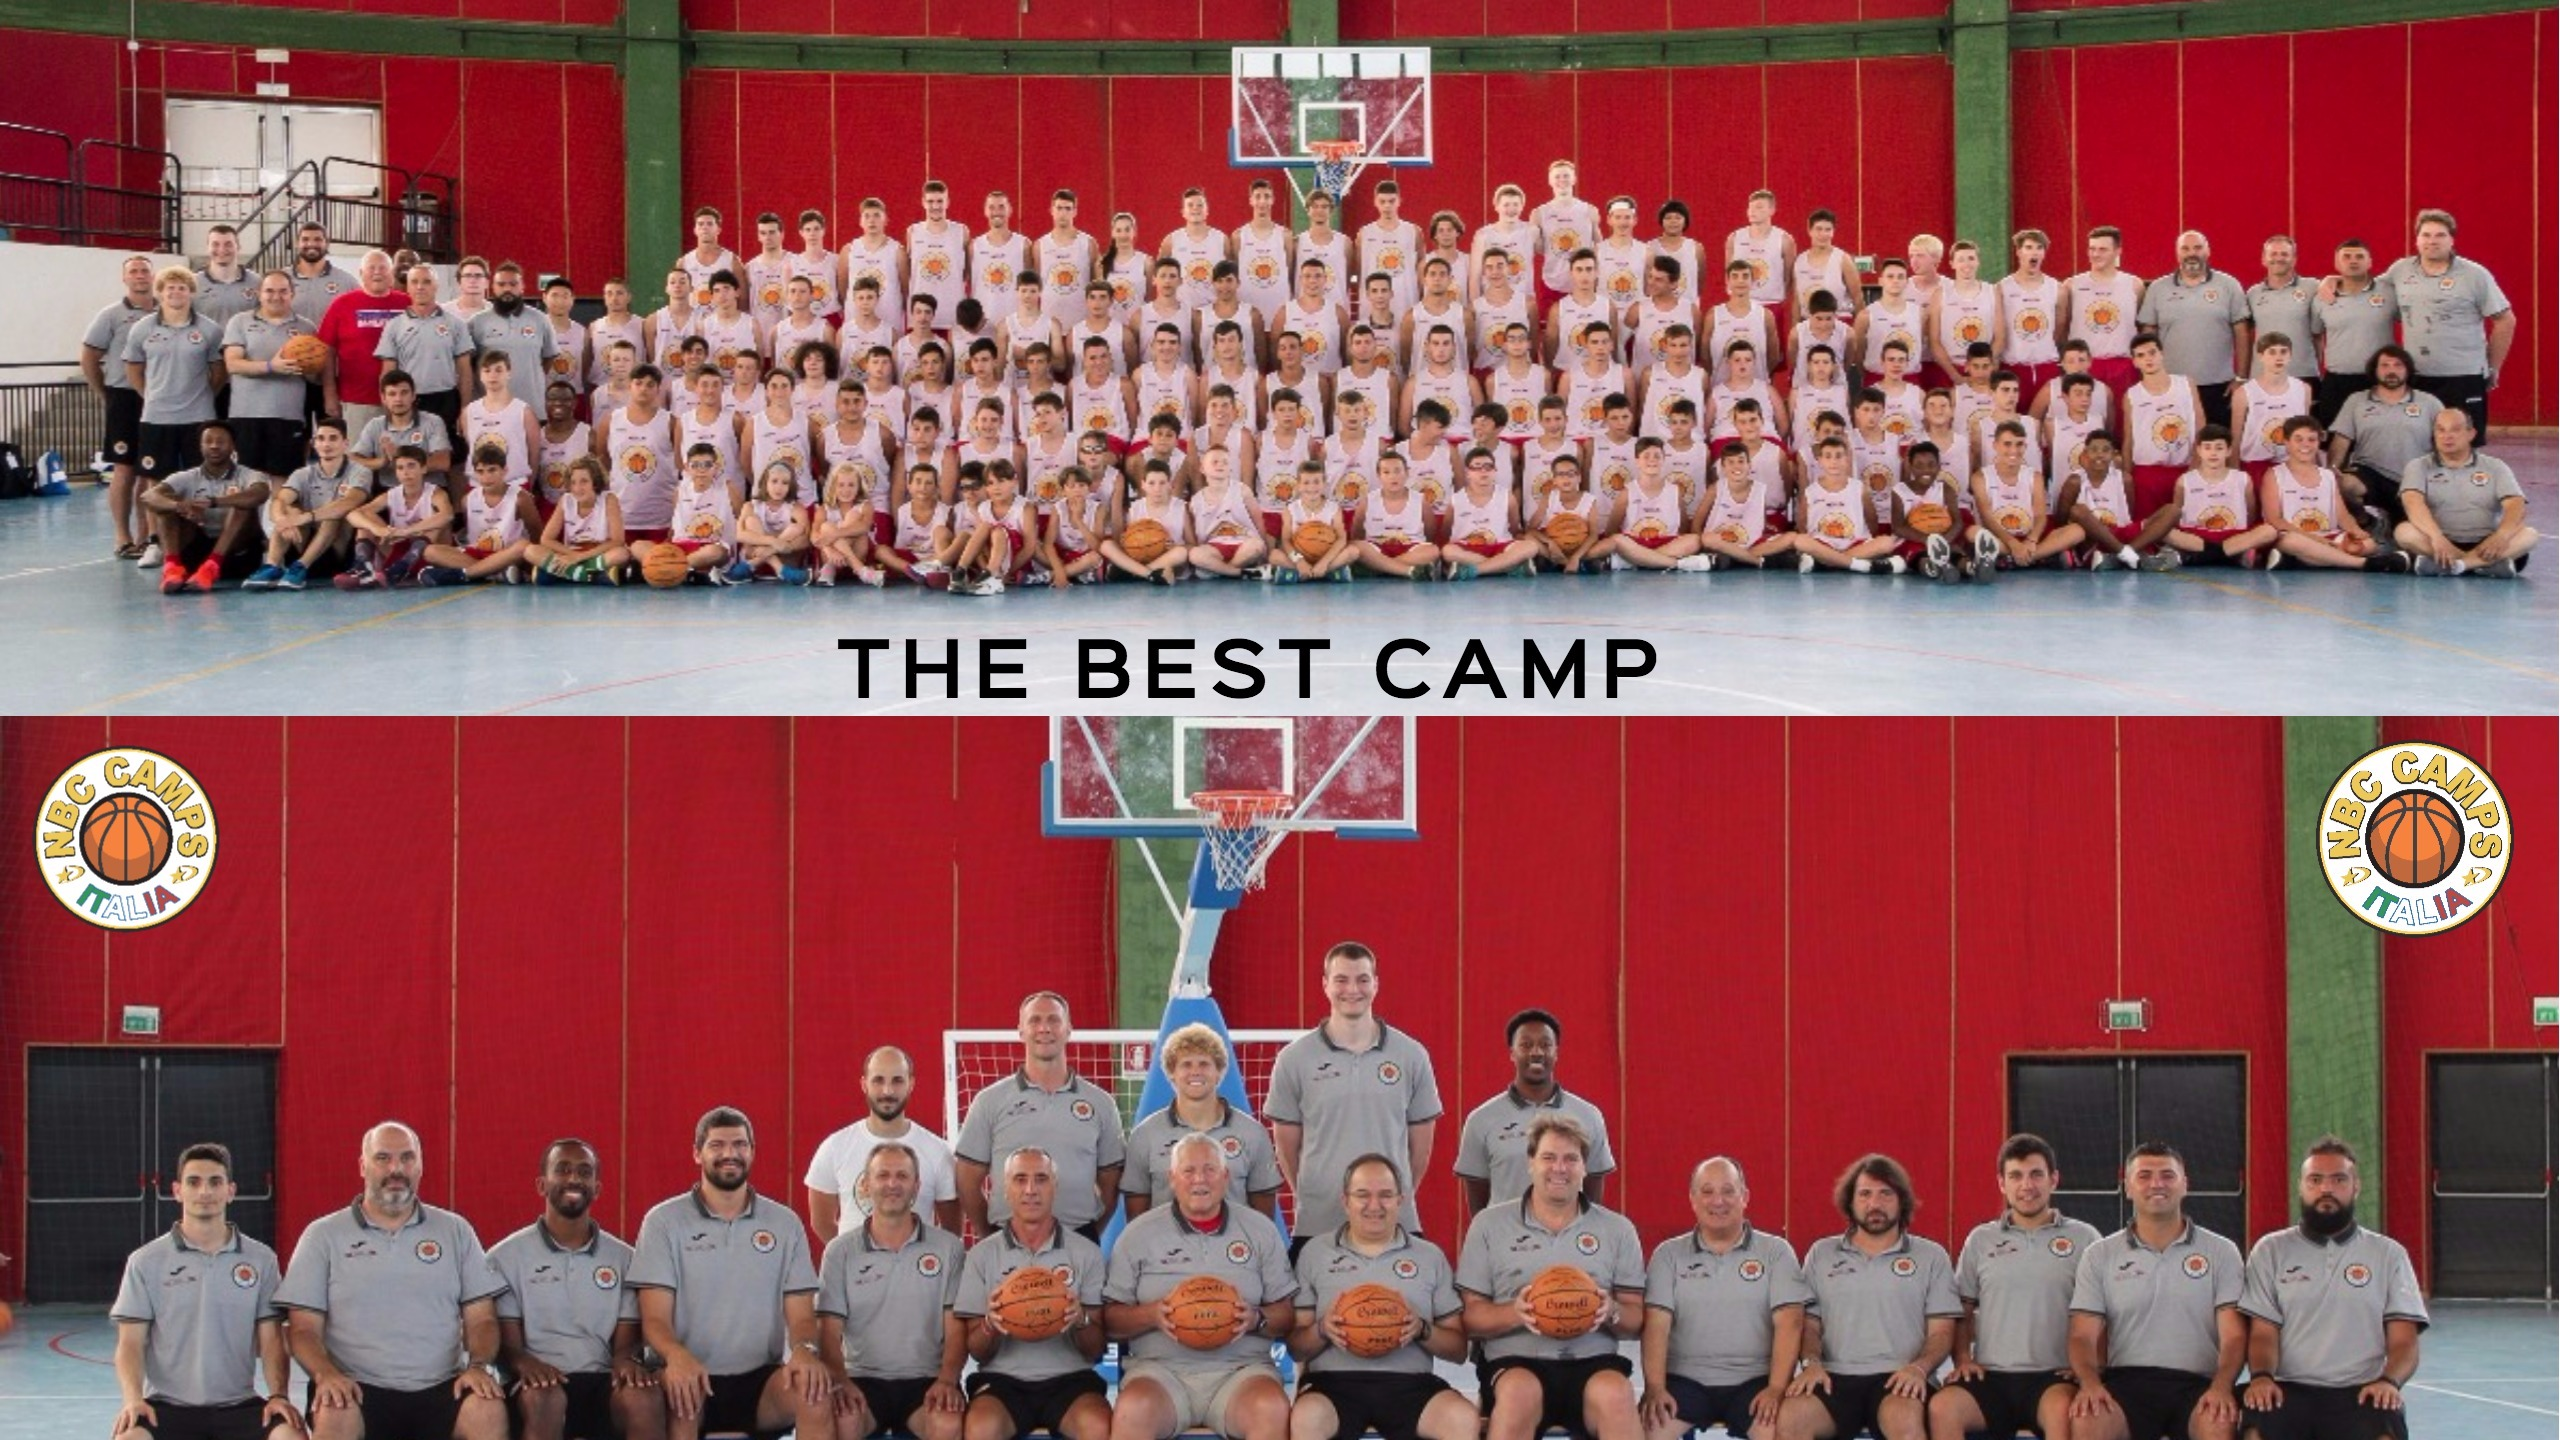 the best camp